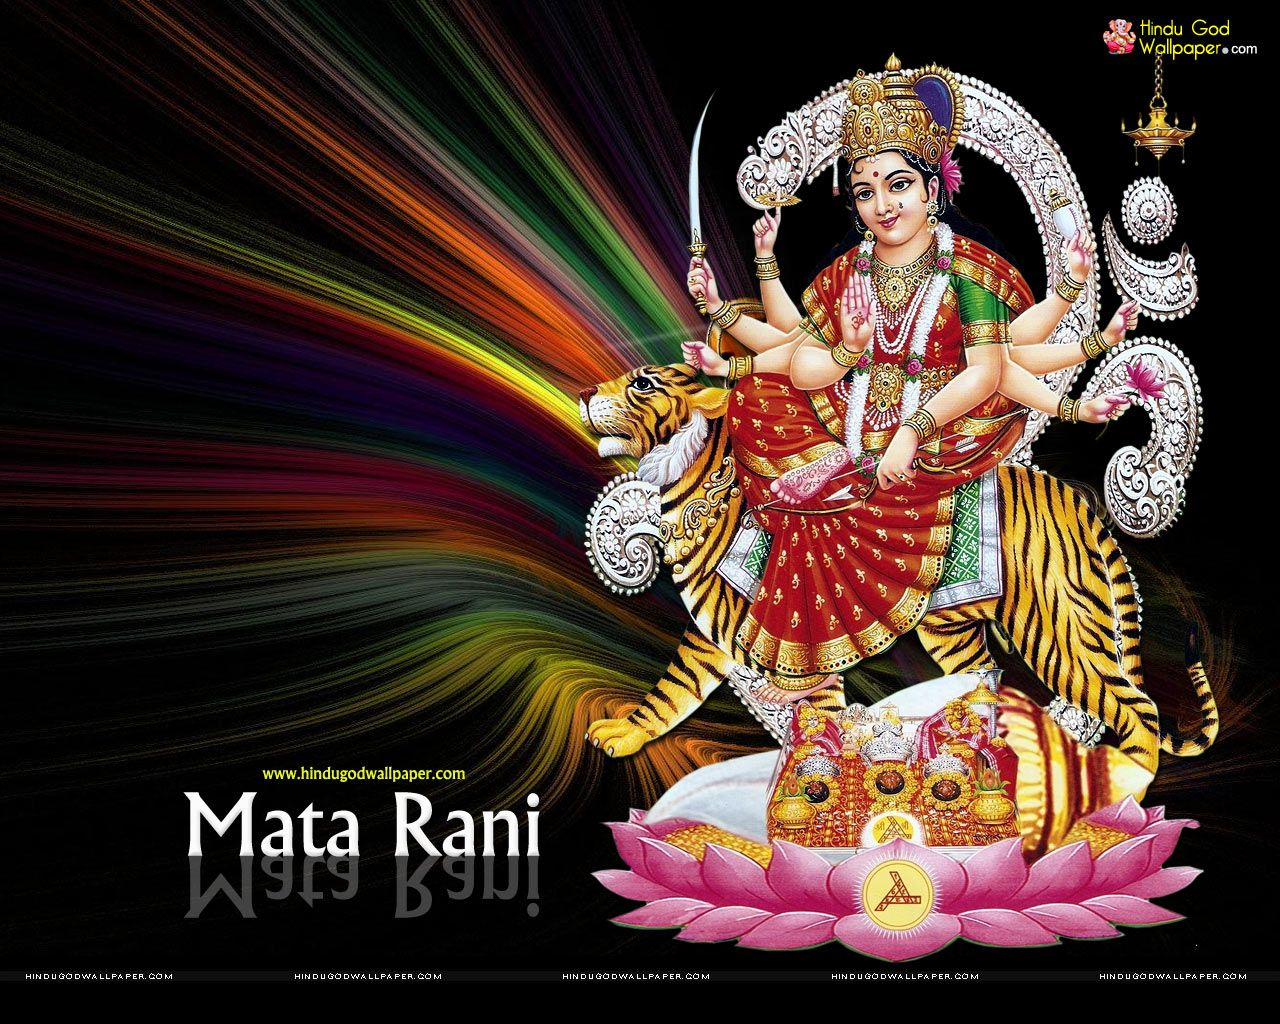 Popular Wallpaper Lord Devi - 2c6973d4efc829a1da44fff1899f29dd  Graphic_383514.jpg